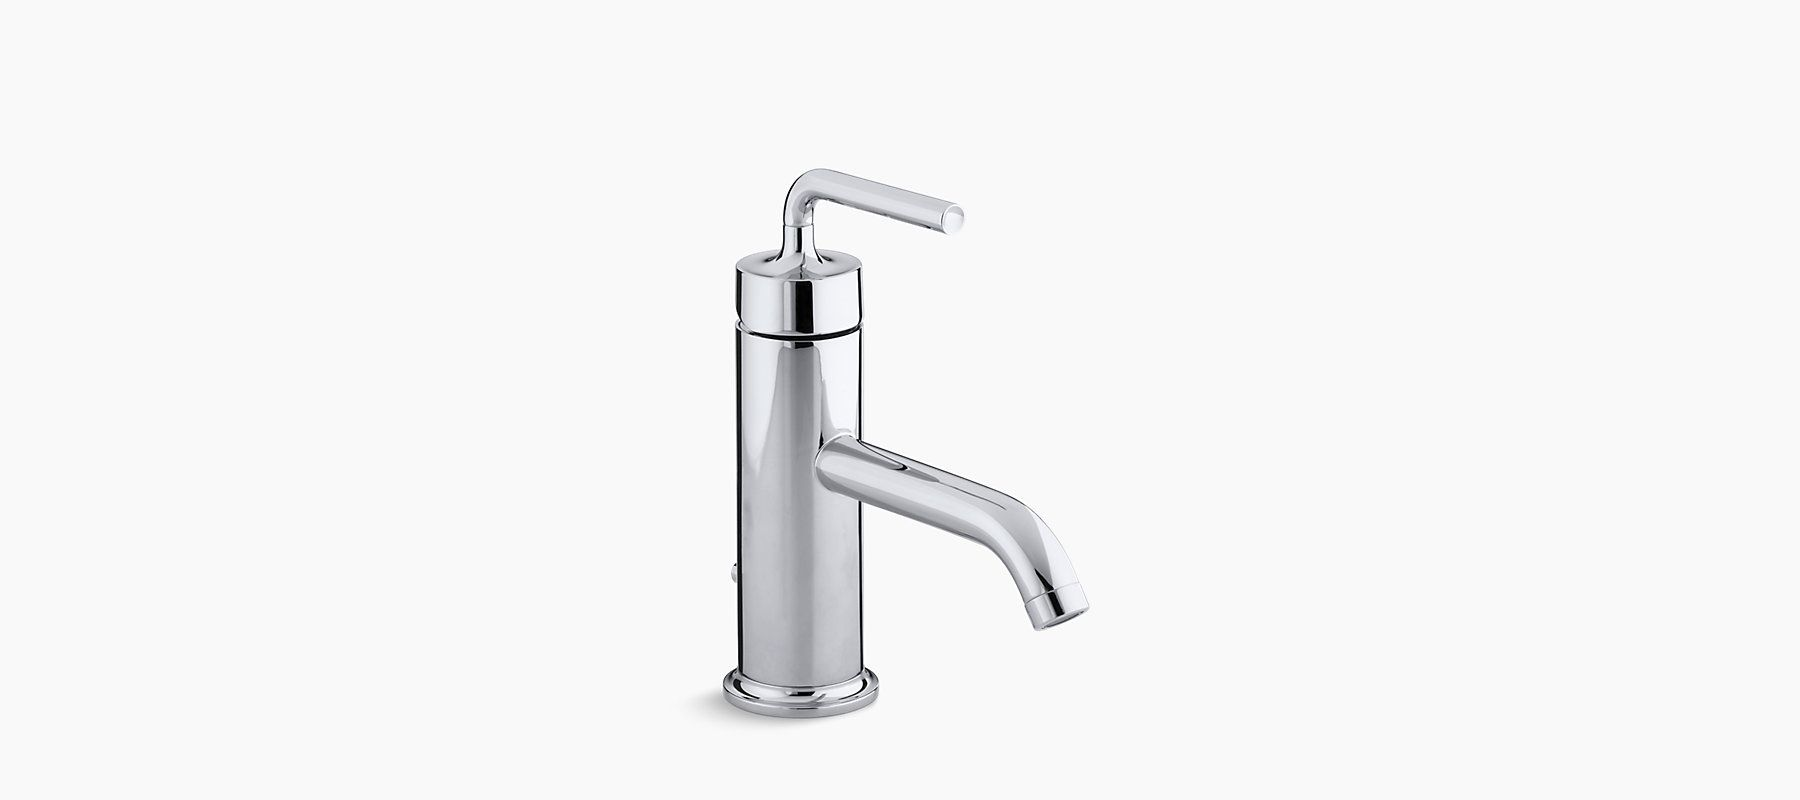 Waschbecken Armaturen · Purist Single Control Sink Faucet With Lever Handle  | K 14402 4A |